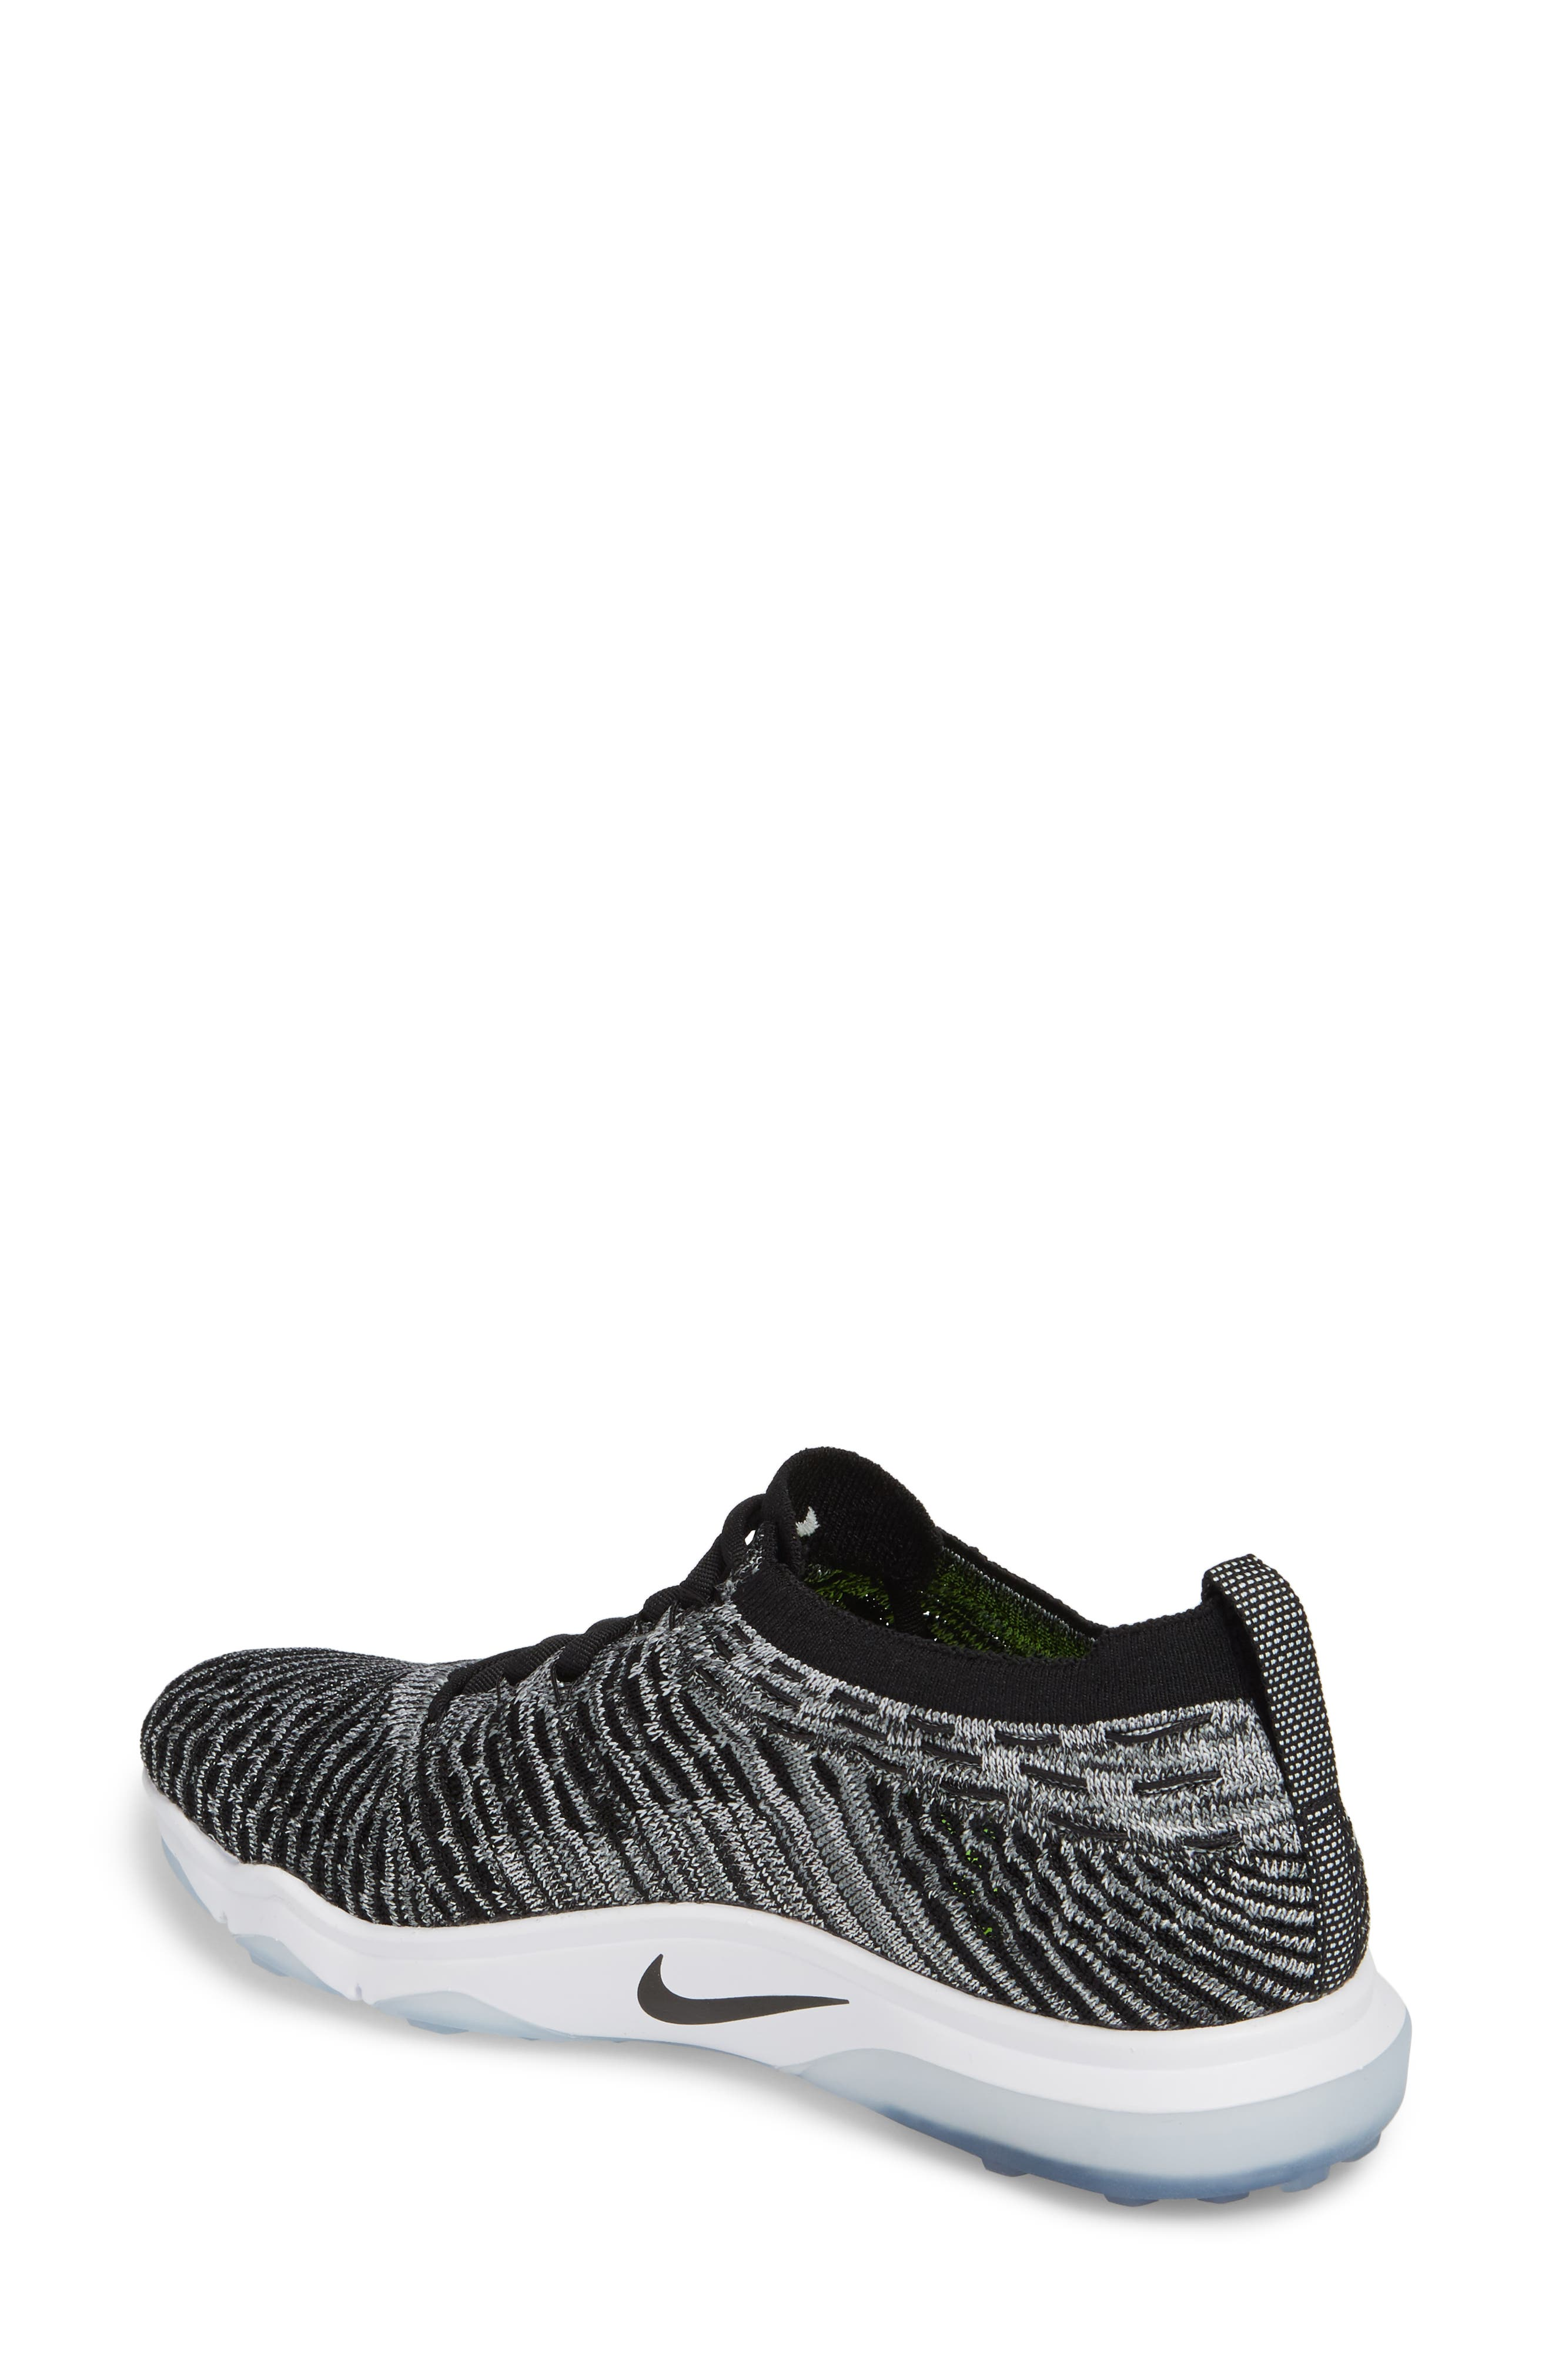 Air Zoom Fearless Flyknit Lux Training Shoe,                             Alternate thumbnail 2, color,                             007